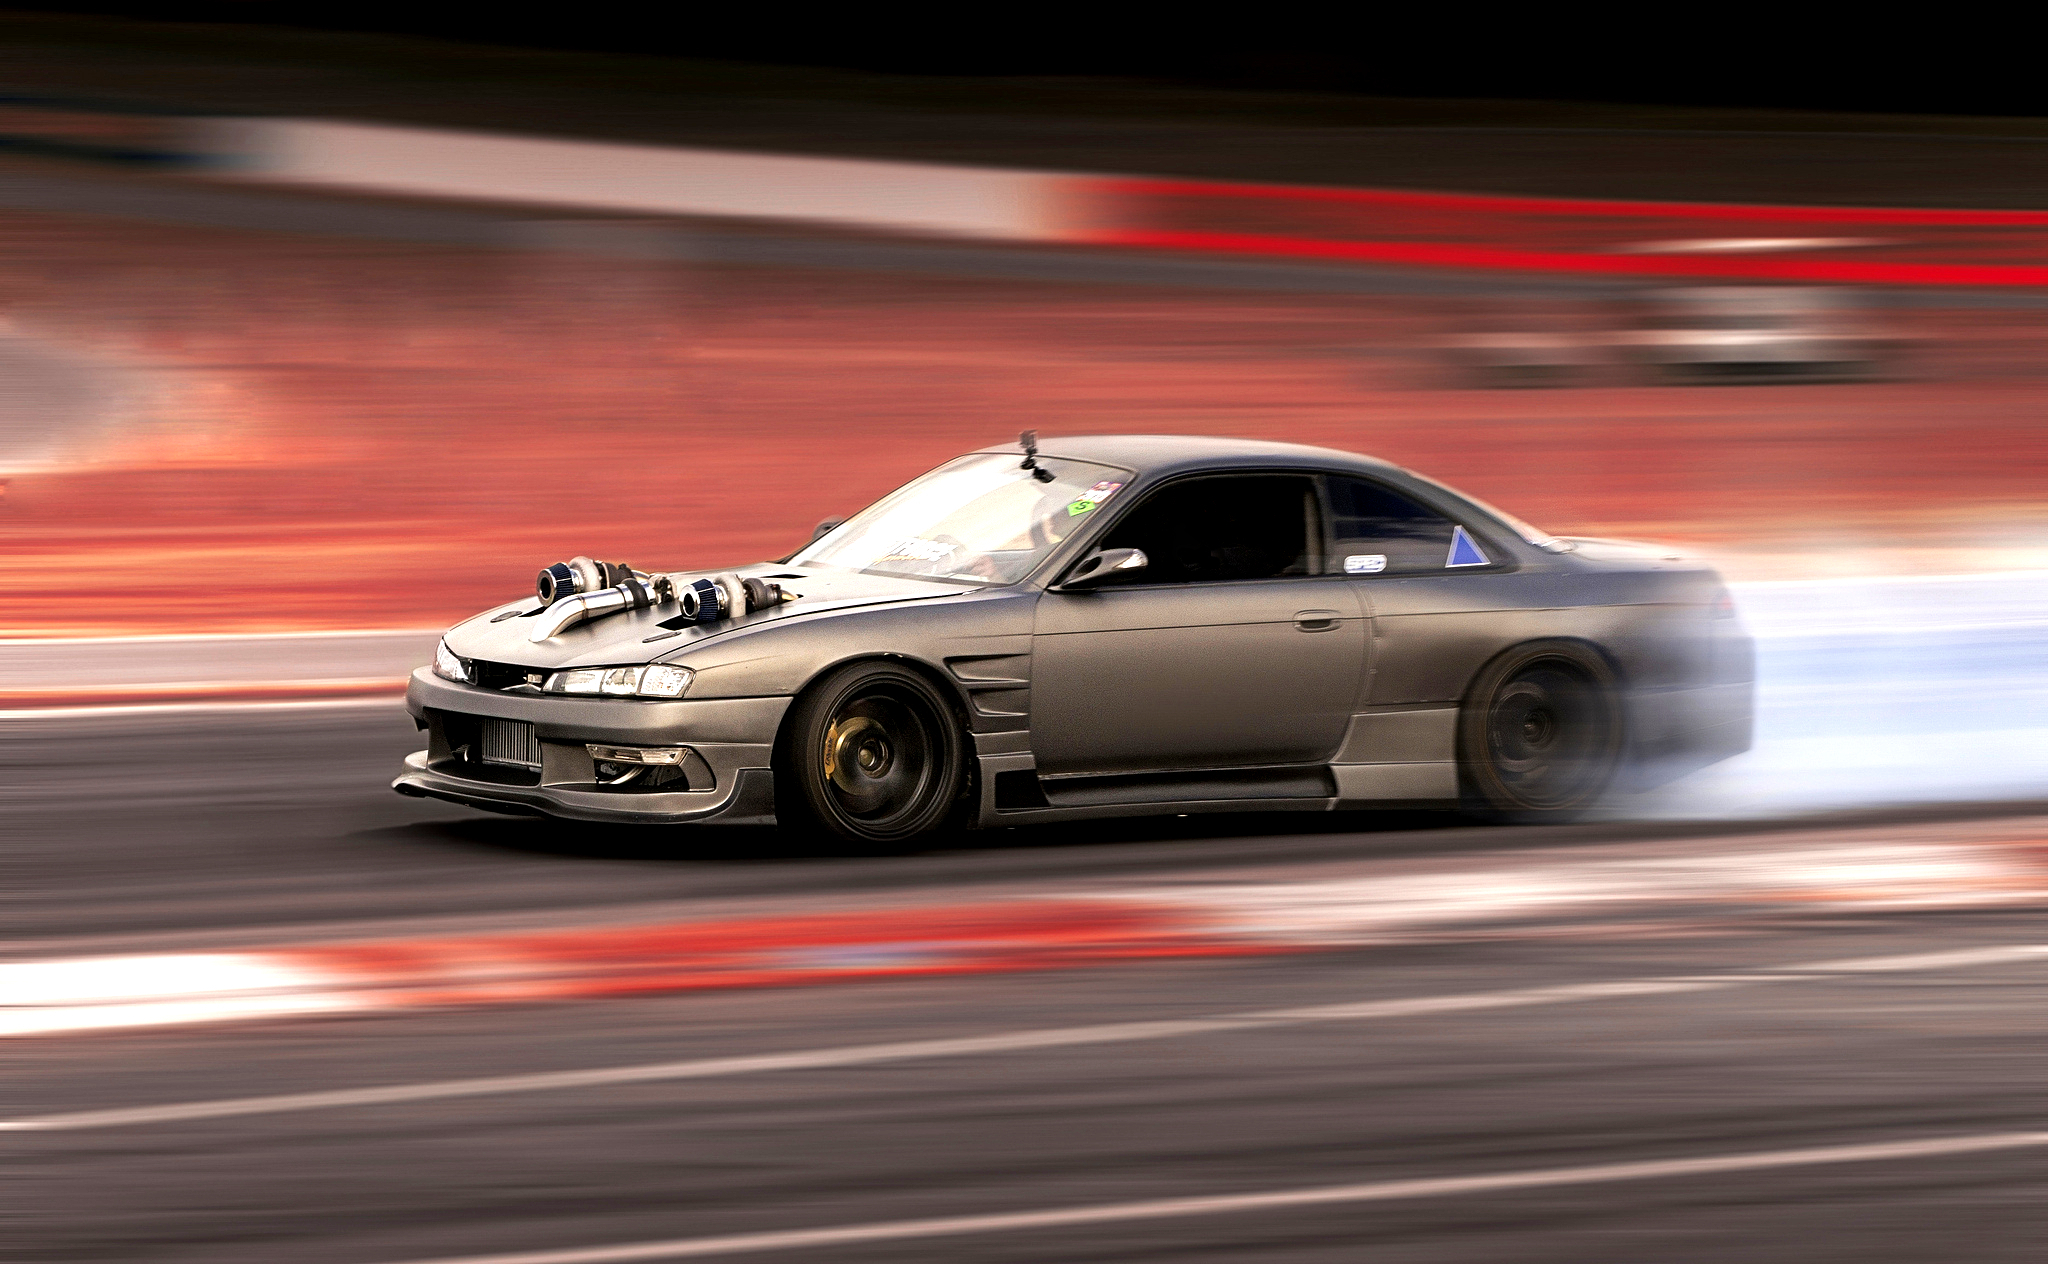 Best Car Drifting Wallpapers Nissan Silvia S14 Full Hd Wallpaper And Background Image